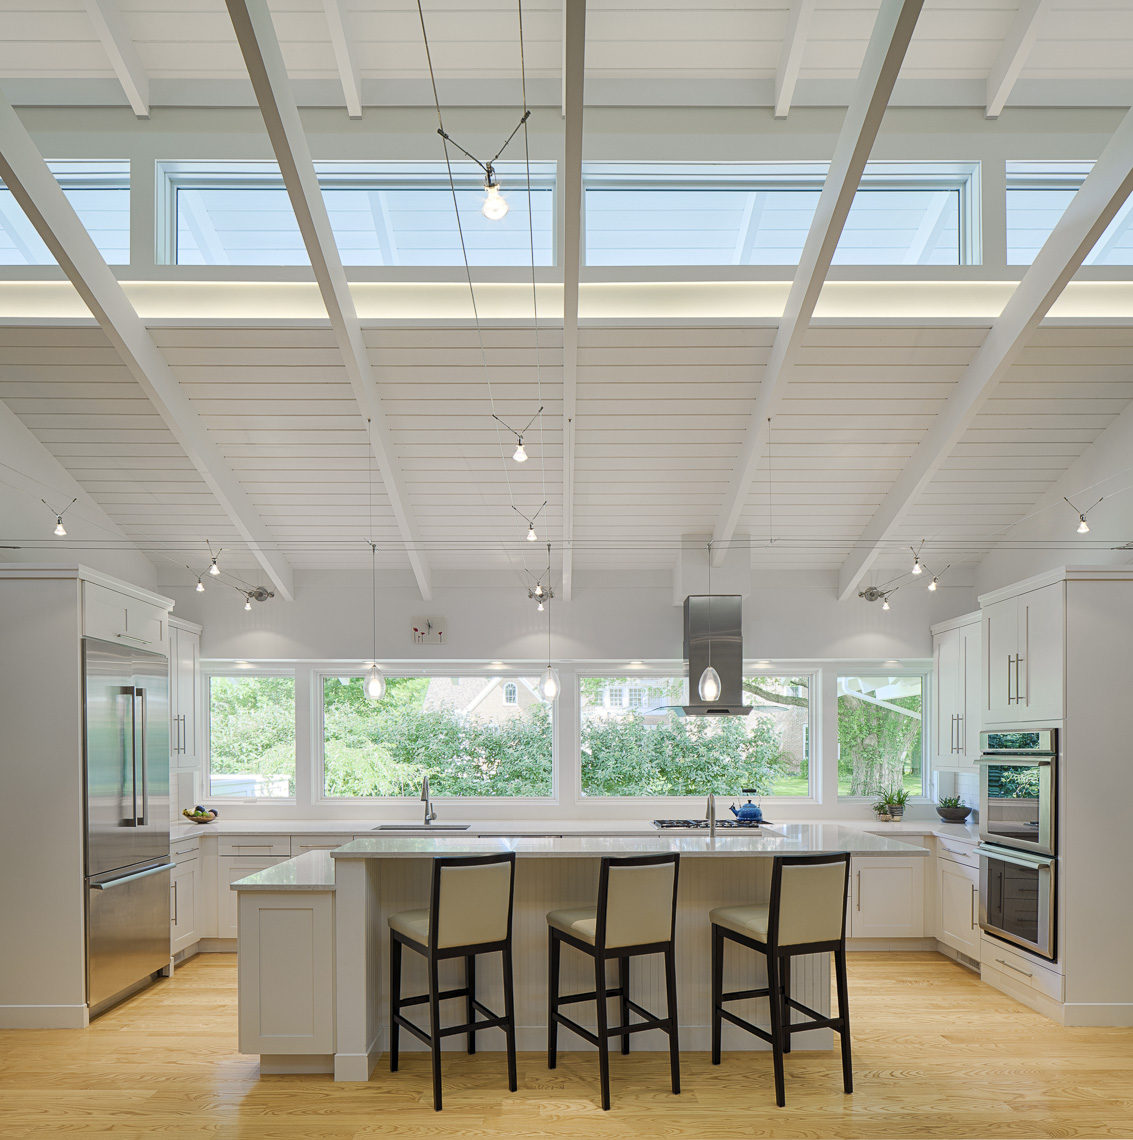 Yellow Springs Private Residence by Earl Reeder Associates photographed by Lauren K Davis based in Columbus, Ohio